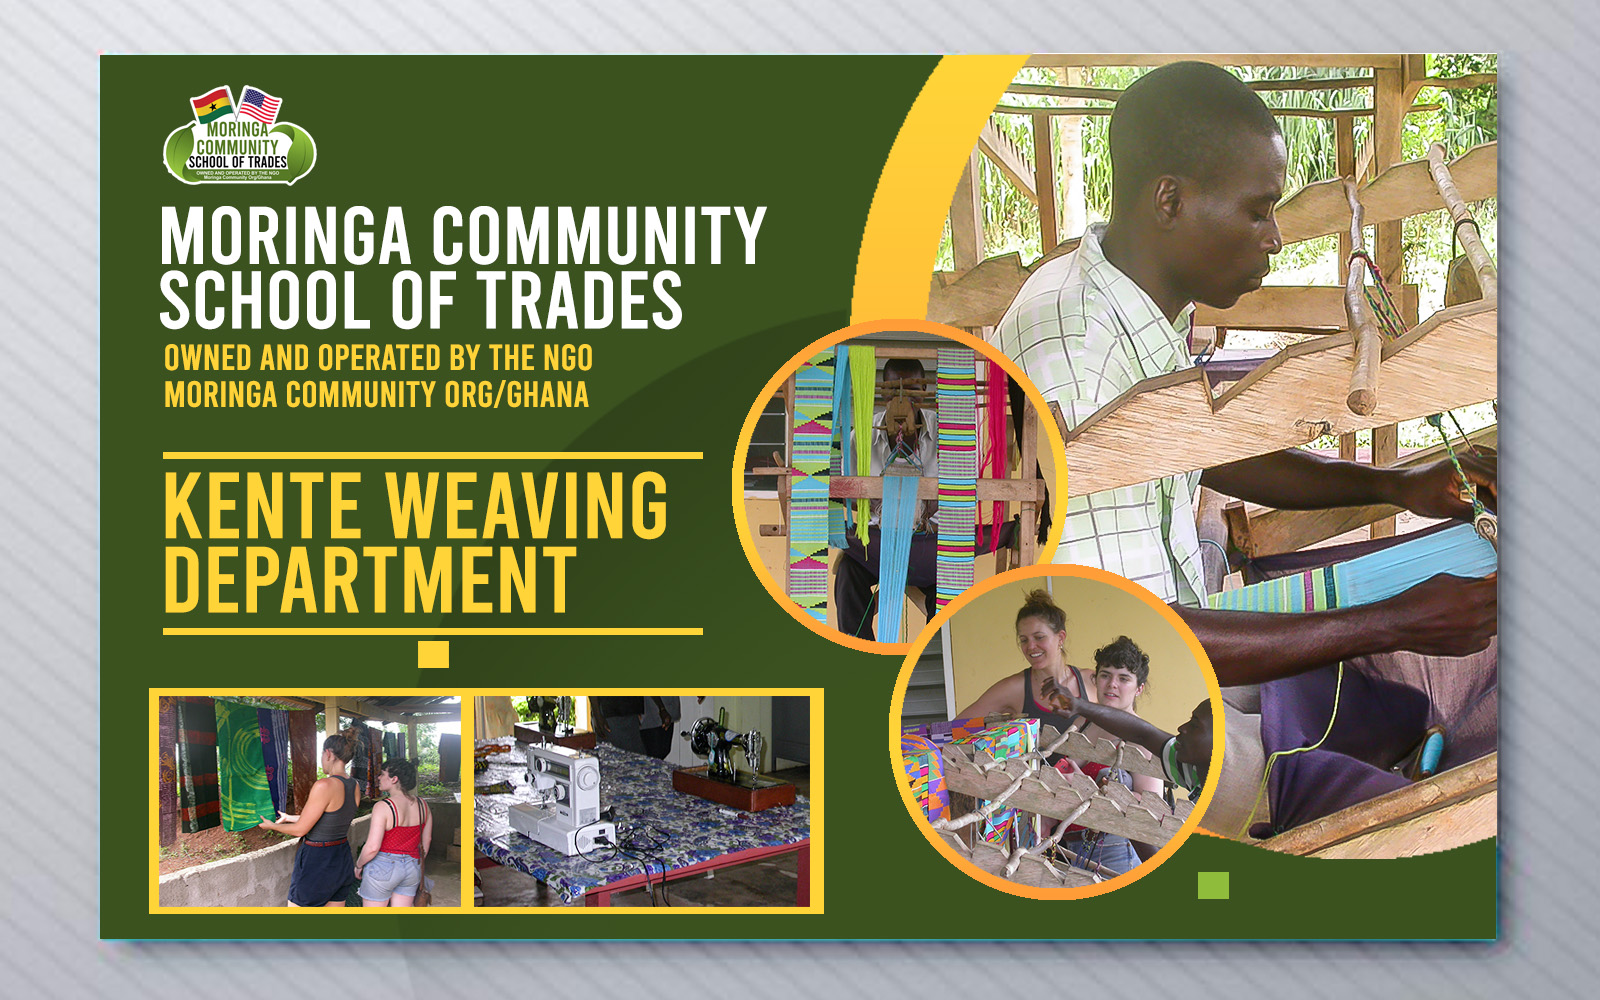 Kente weaving.jpg